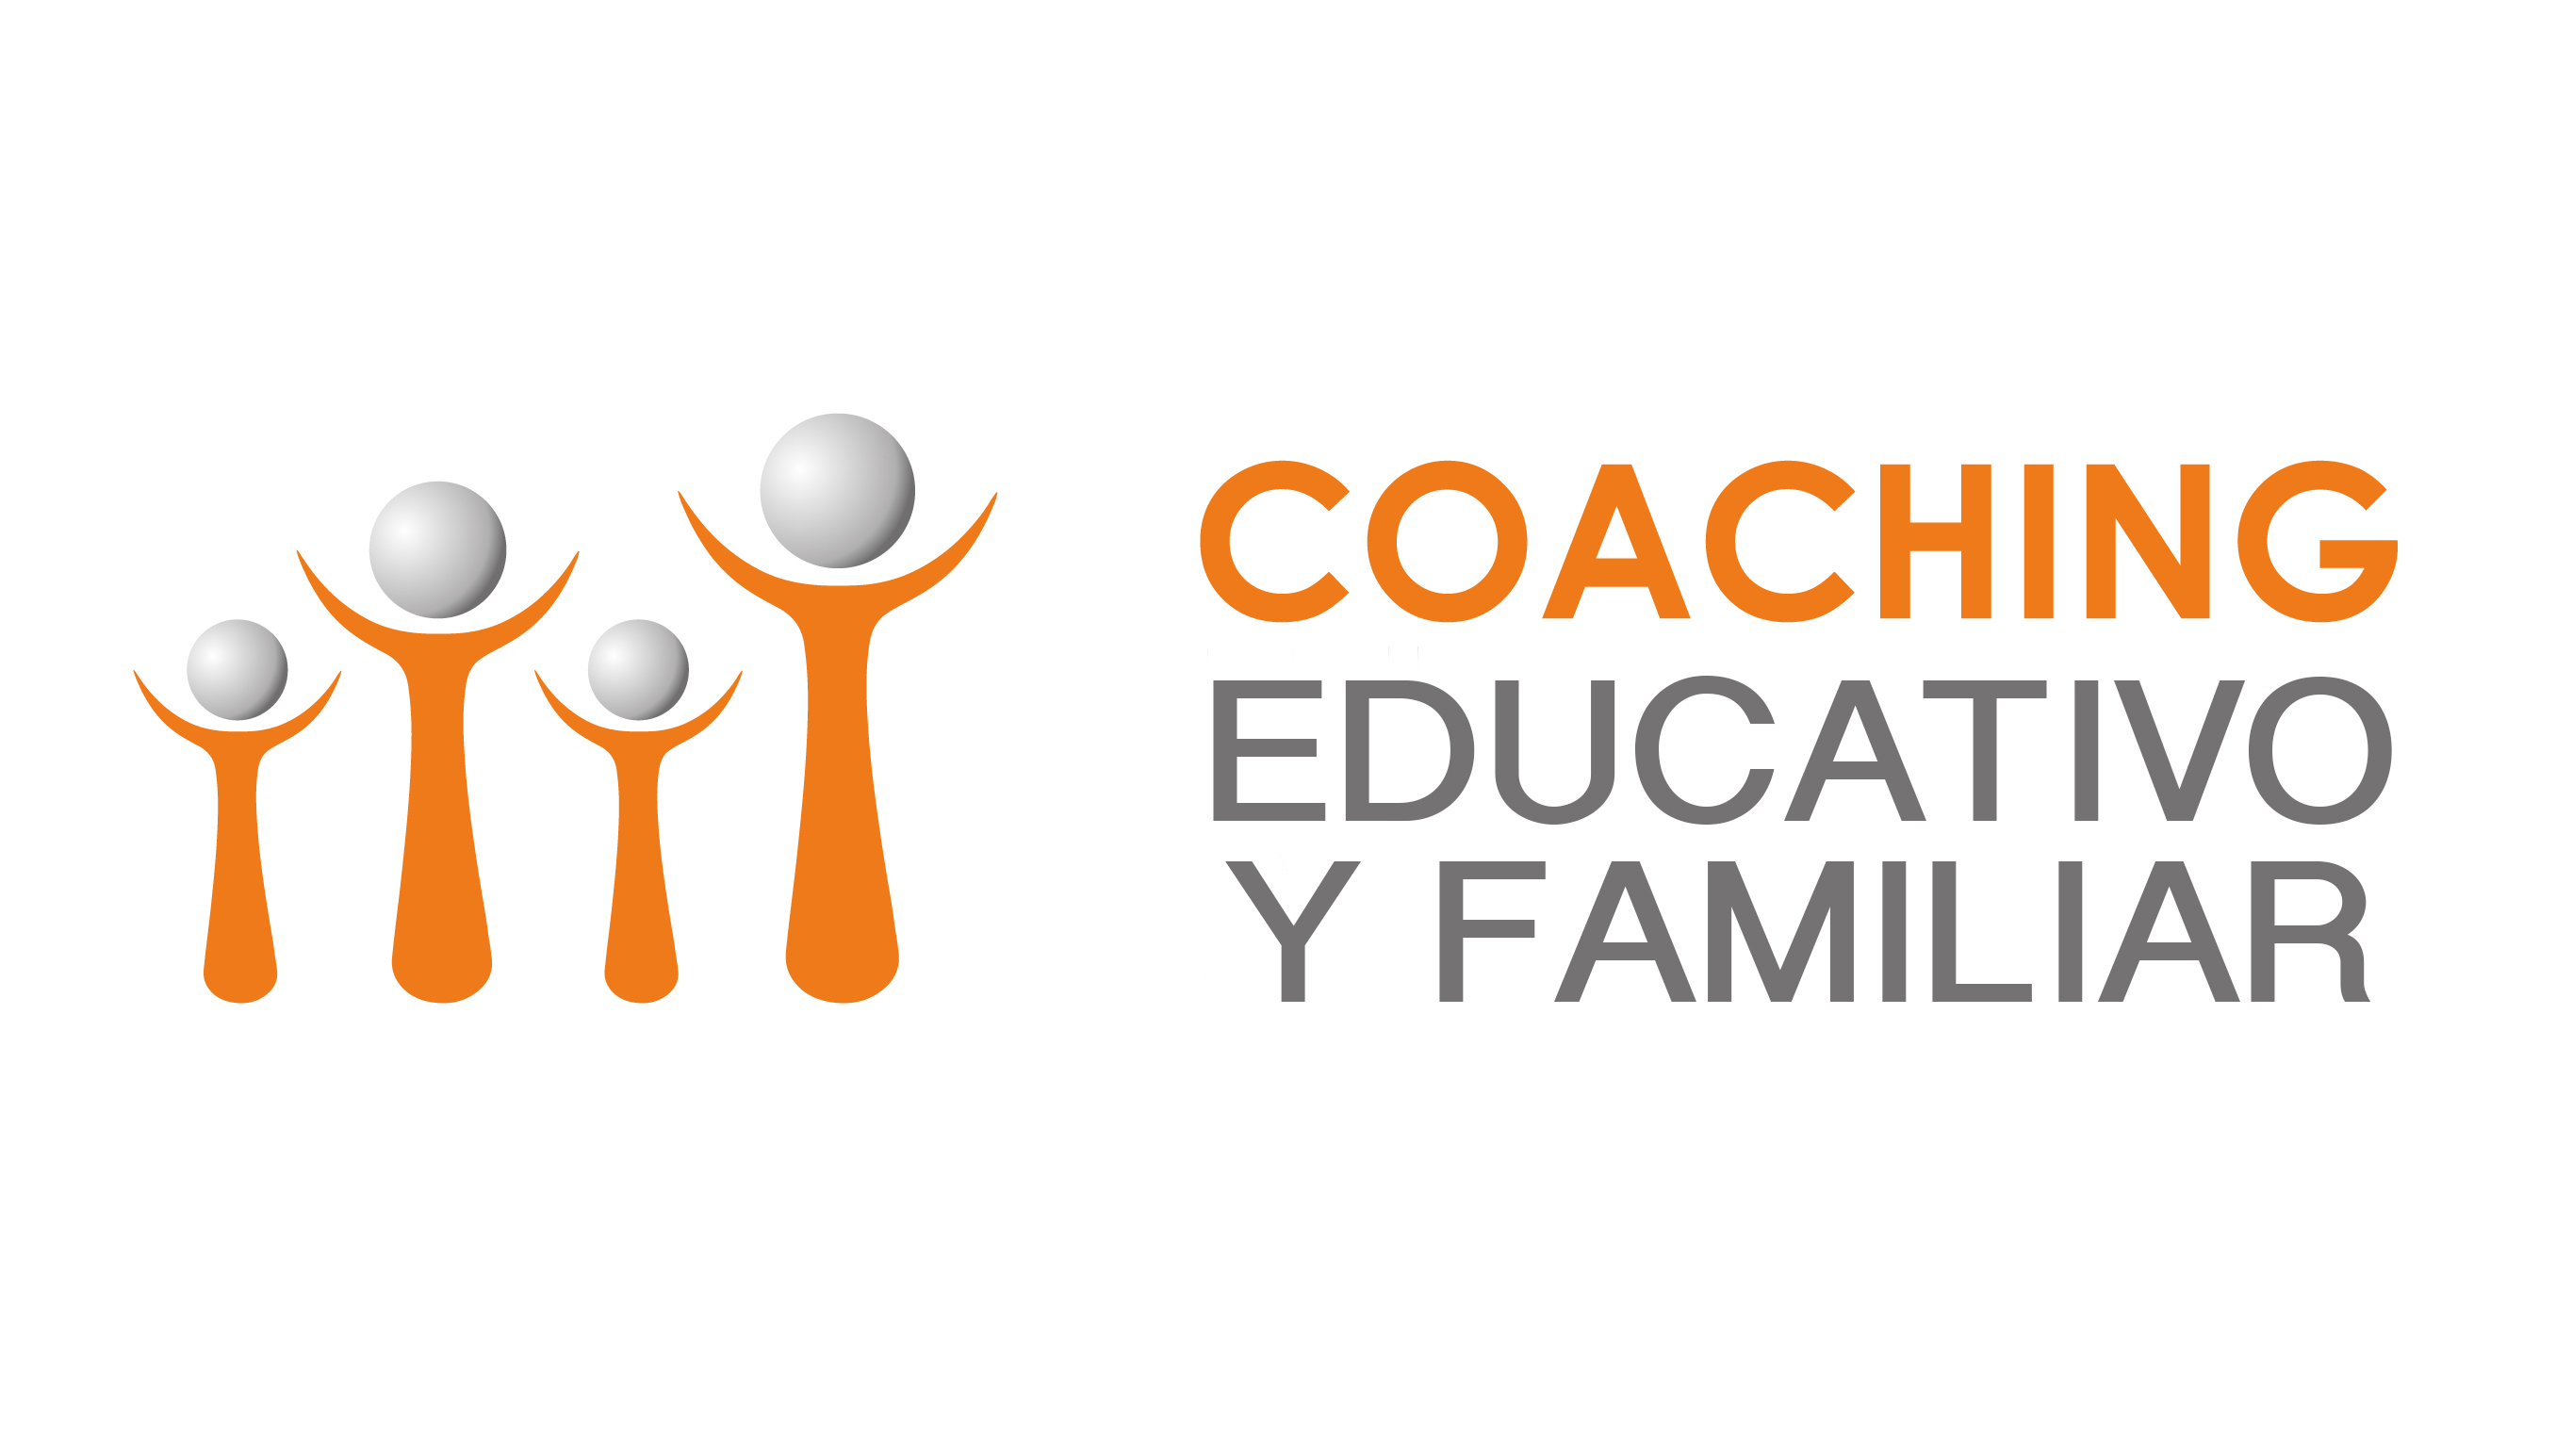 Curso de Coaching Educativo y Familiar @ ON LINE Y PRESENCIAL